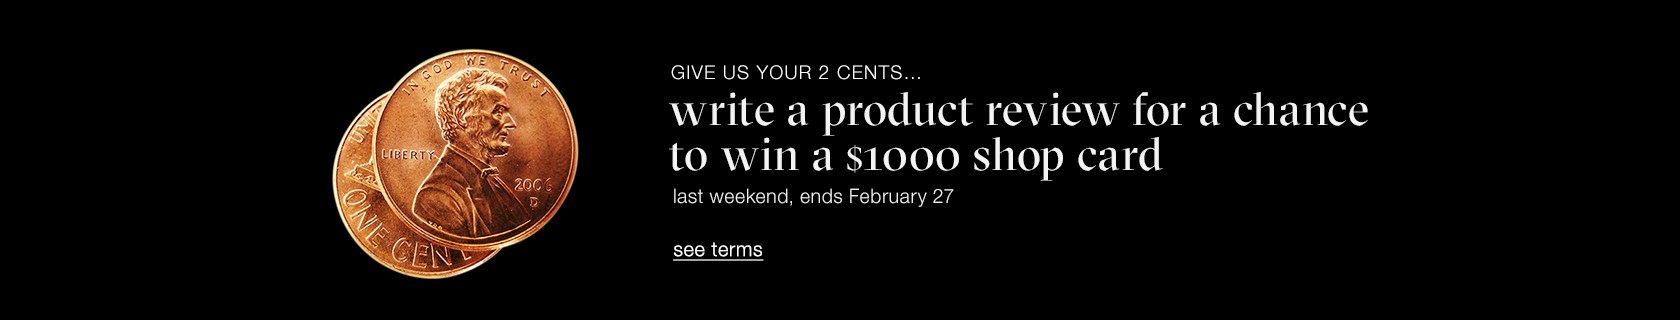 write a product review for a chance to win a $1000 shop card